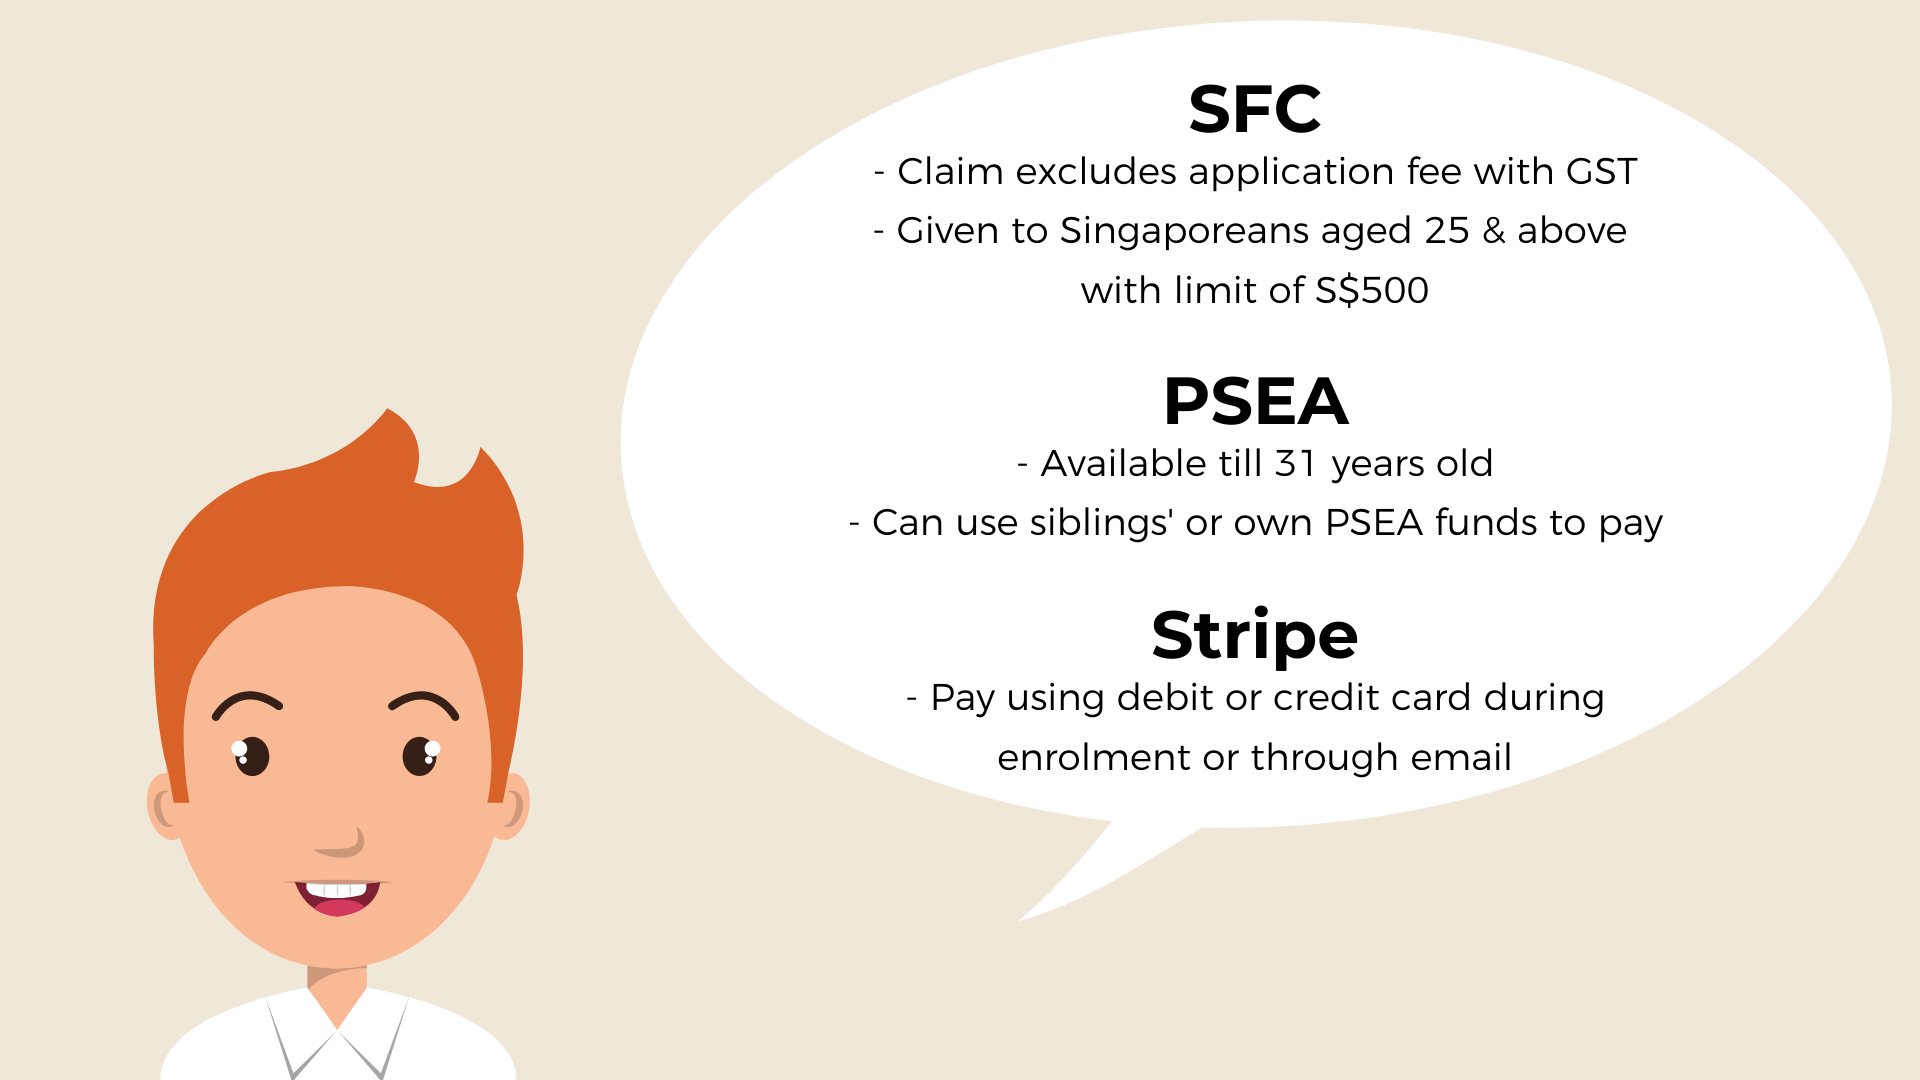 Staff of TaF.tc explains the different modes of payment available to use for courses which includes SFC, PSEA and Stripe via debit or credit card.